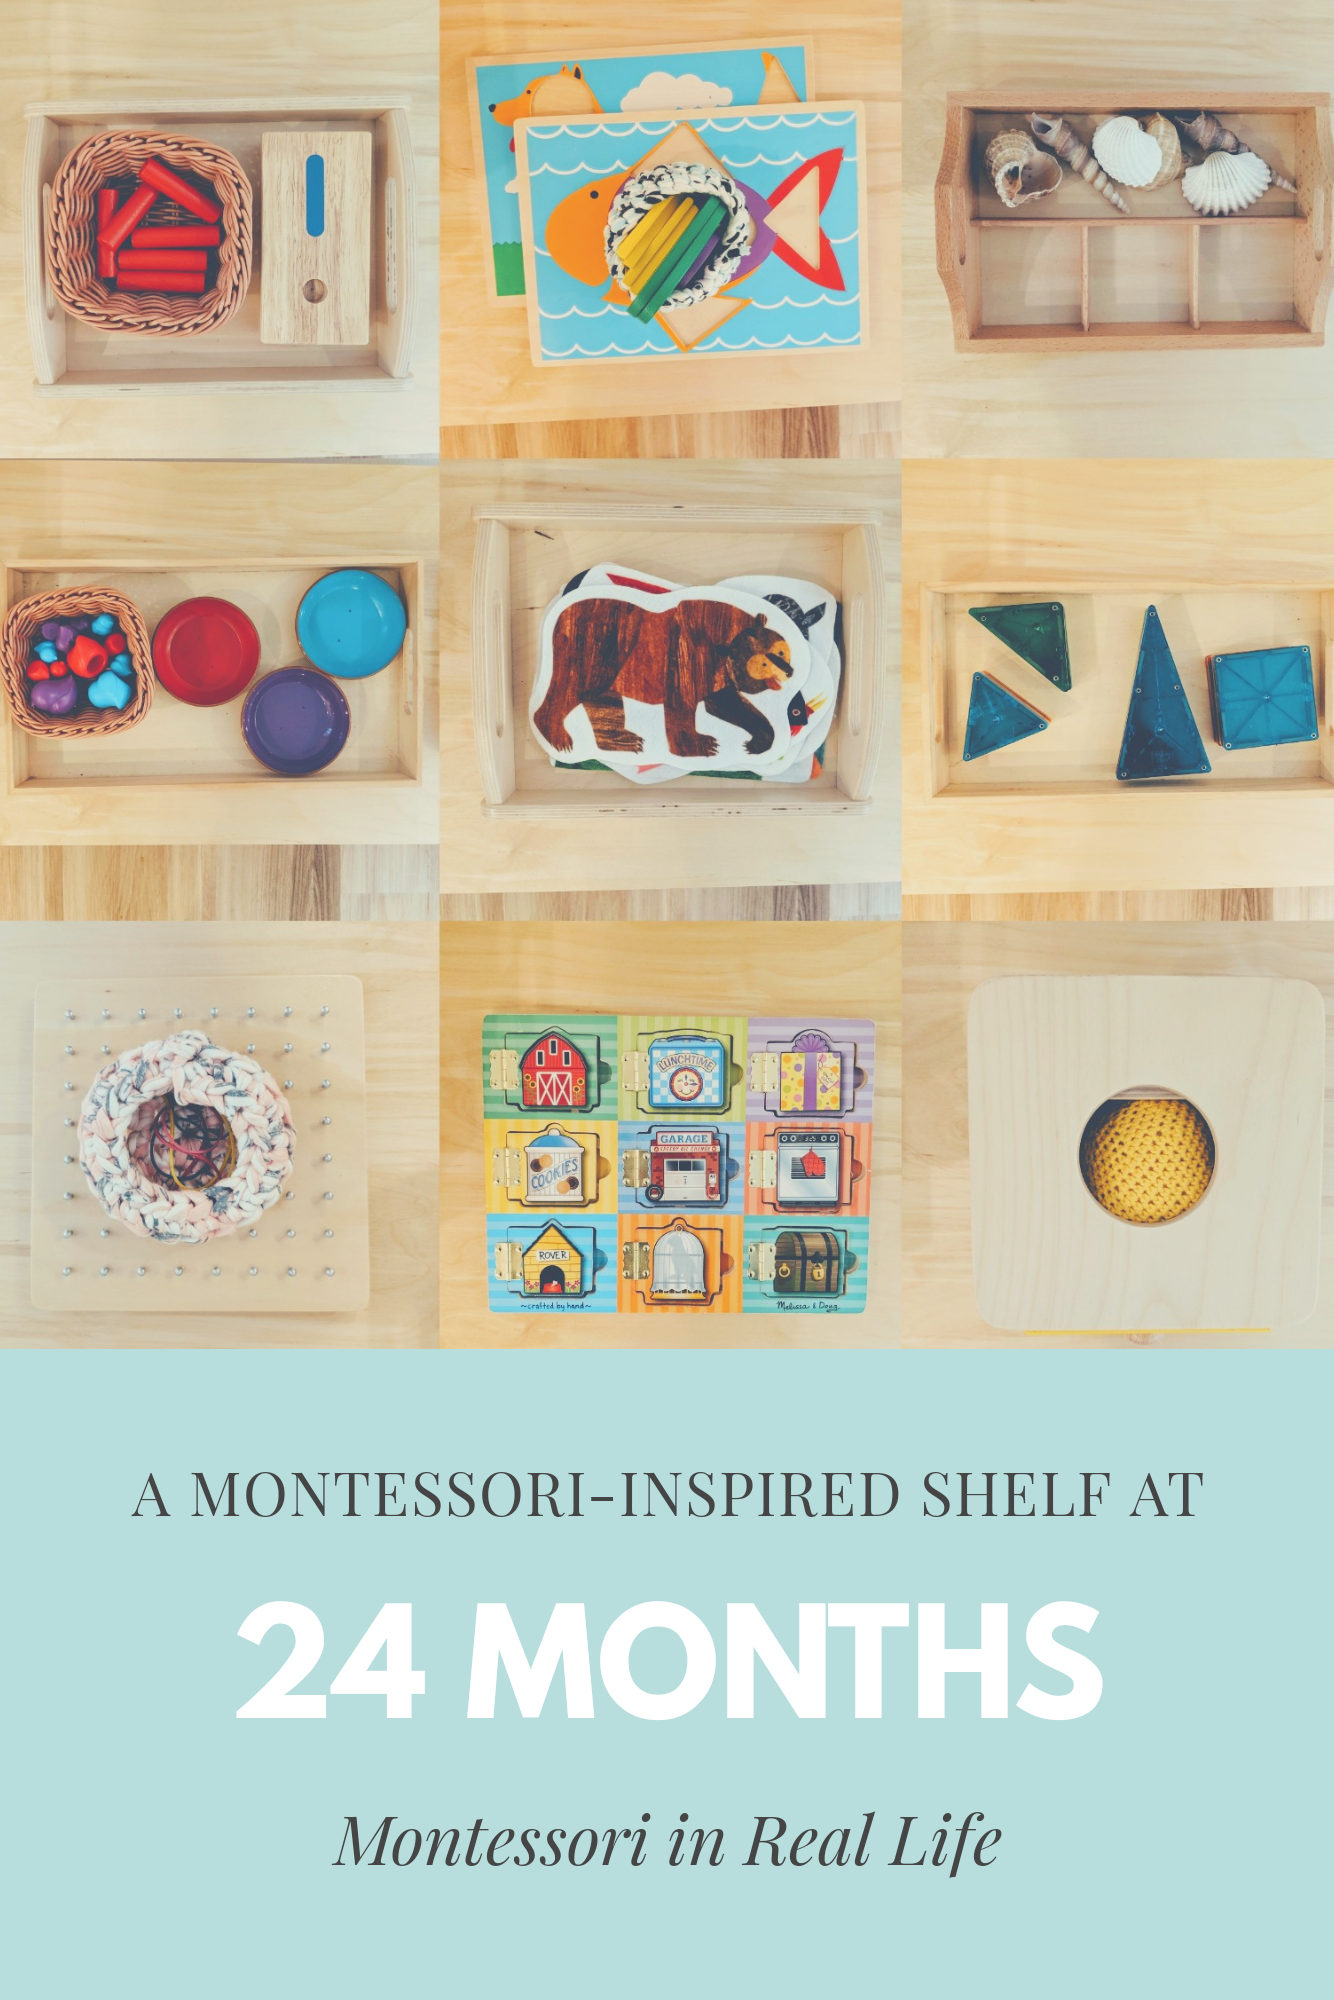 Montessori-inspired Materials at 24 Months - Montessori in Real Life